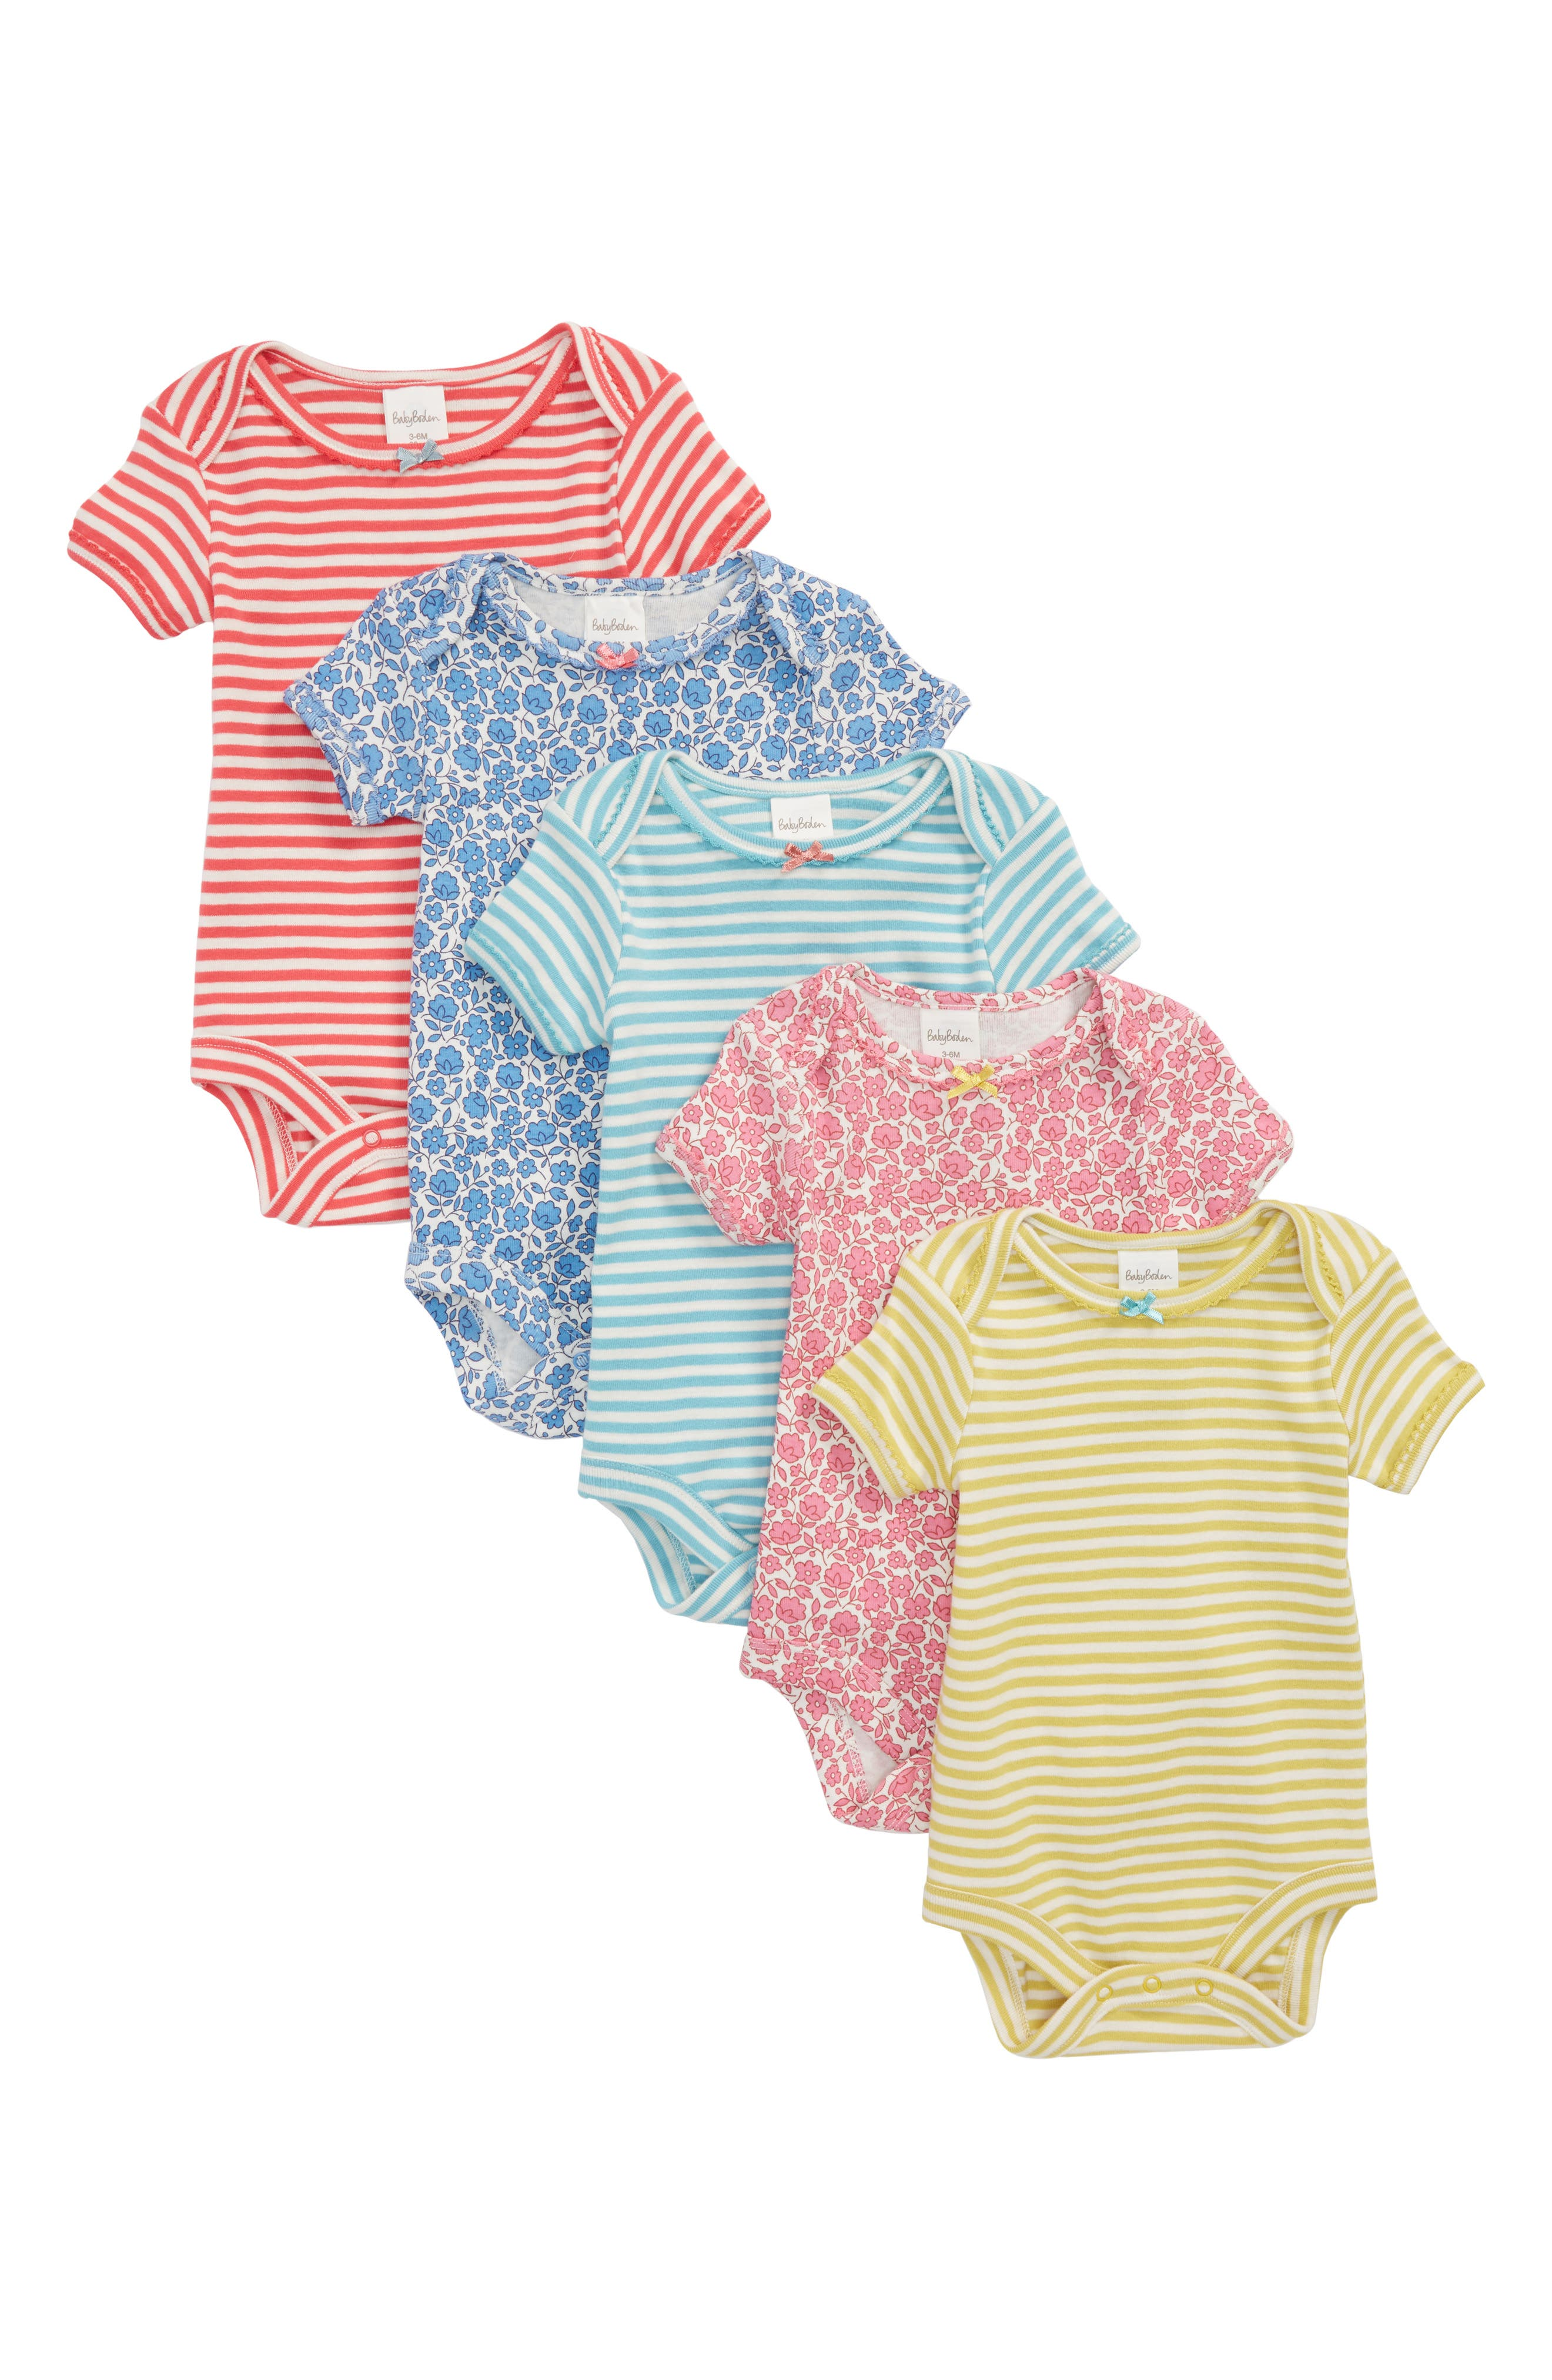 5-Pack Assorted Bodysuits,                         Main,                         color, Lake Blue/ Floral Toile